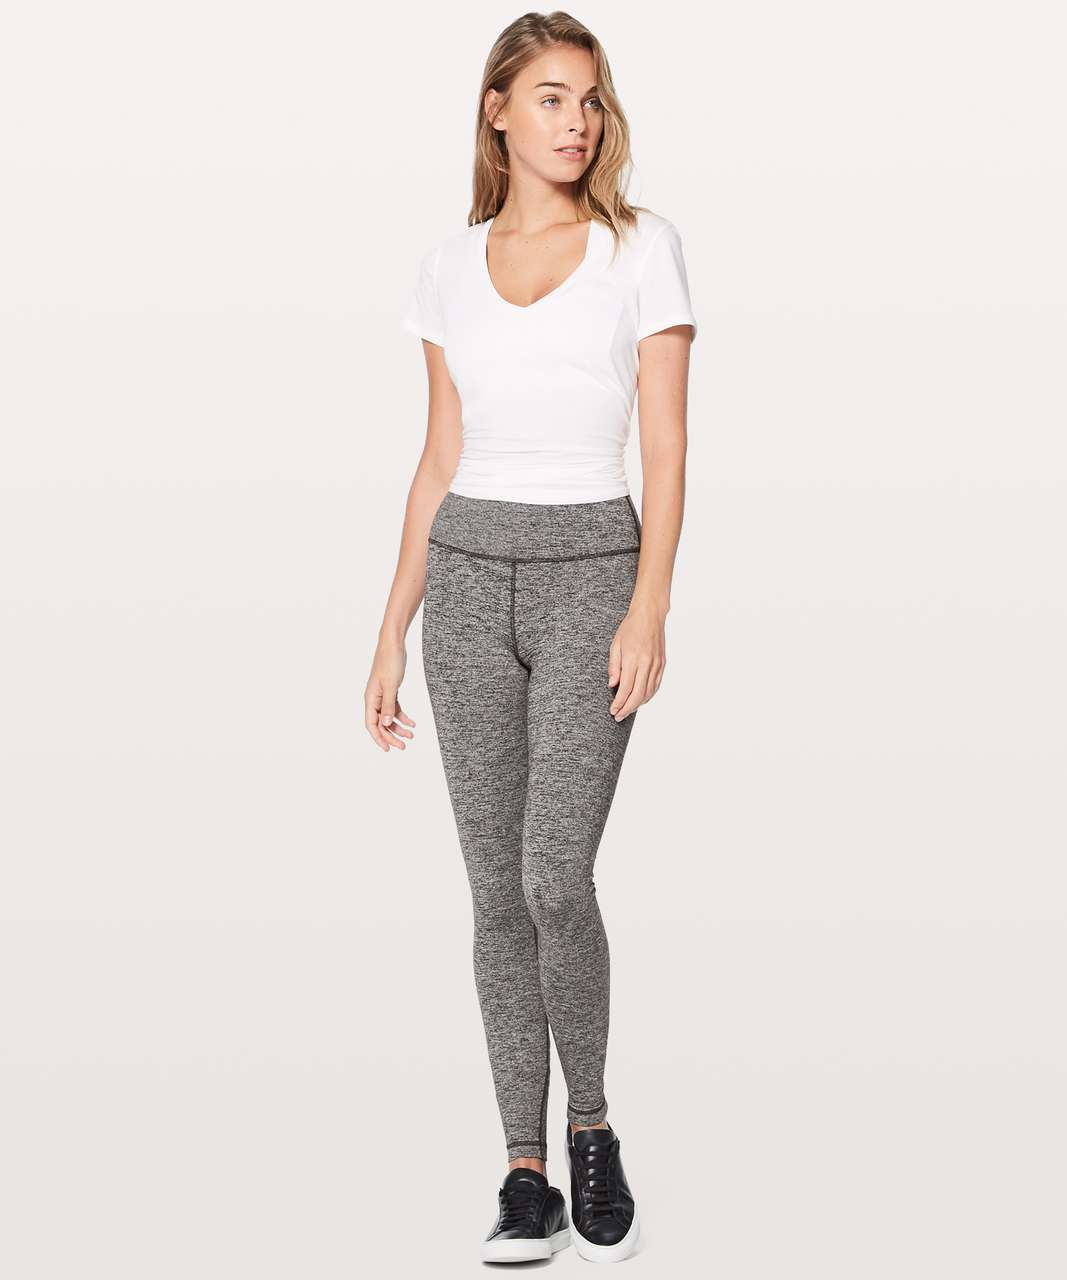 "Lululemon Wunder Under Hi-Rise Tight (Tall) 31"" - Heathered Black"